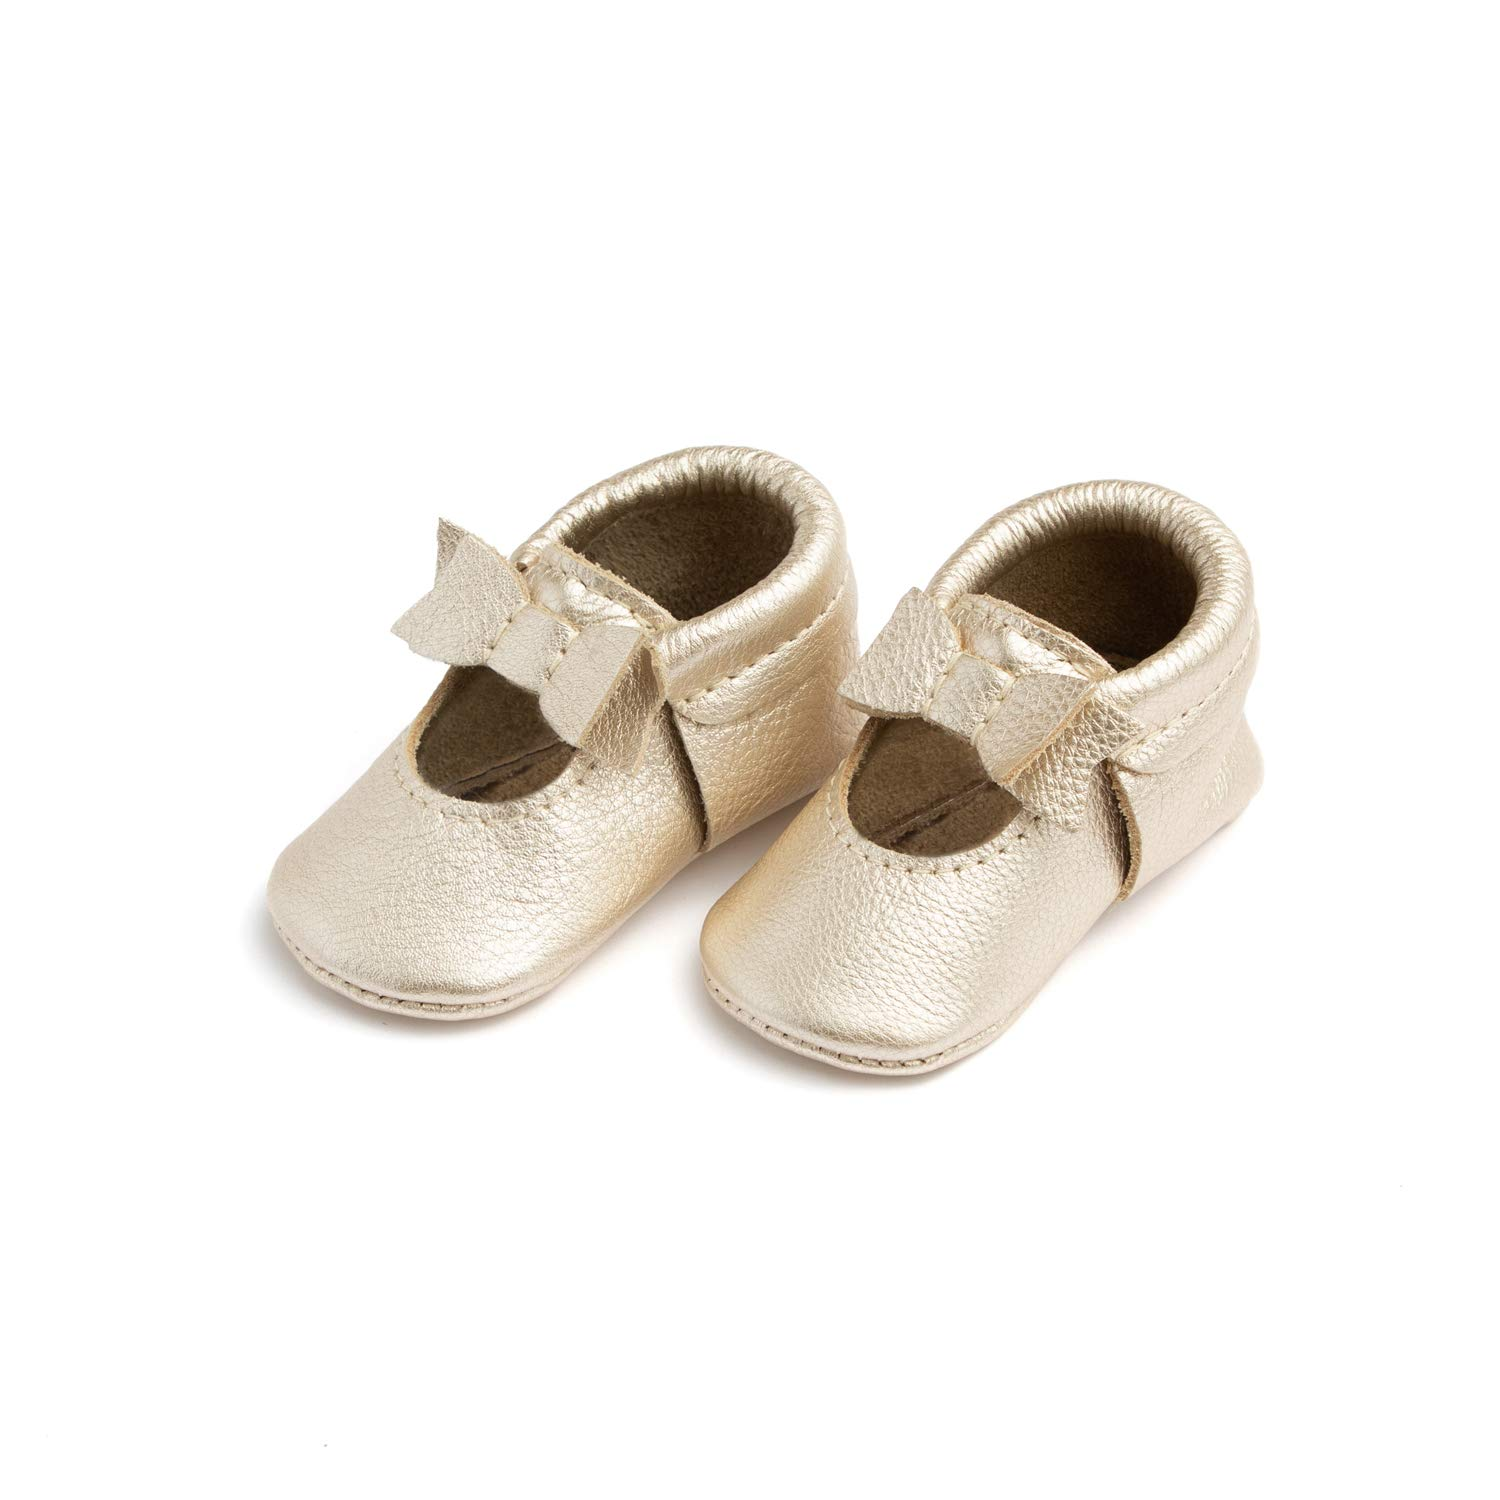 Freshly Picked - Rubber Mini Sole Leather Ballet Flat Bow Toddler Girl Moccasins - Size 5 Platinum Gold